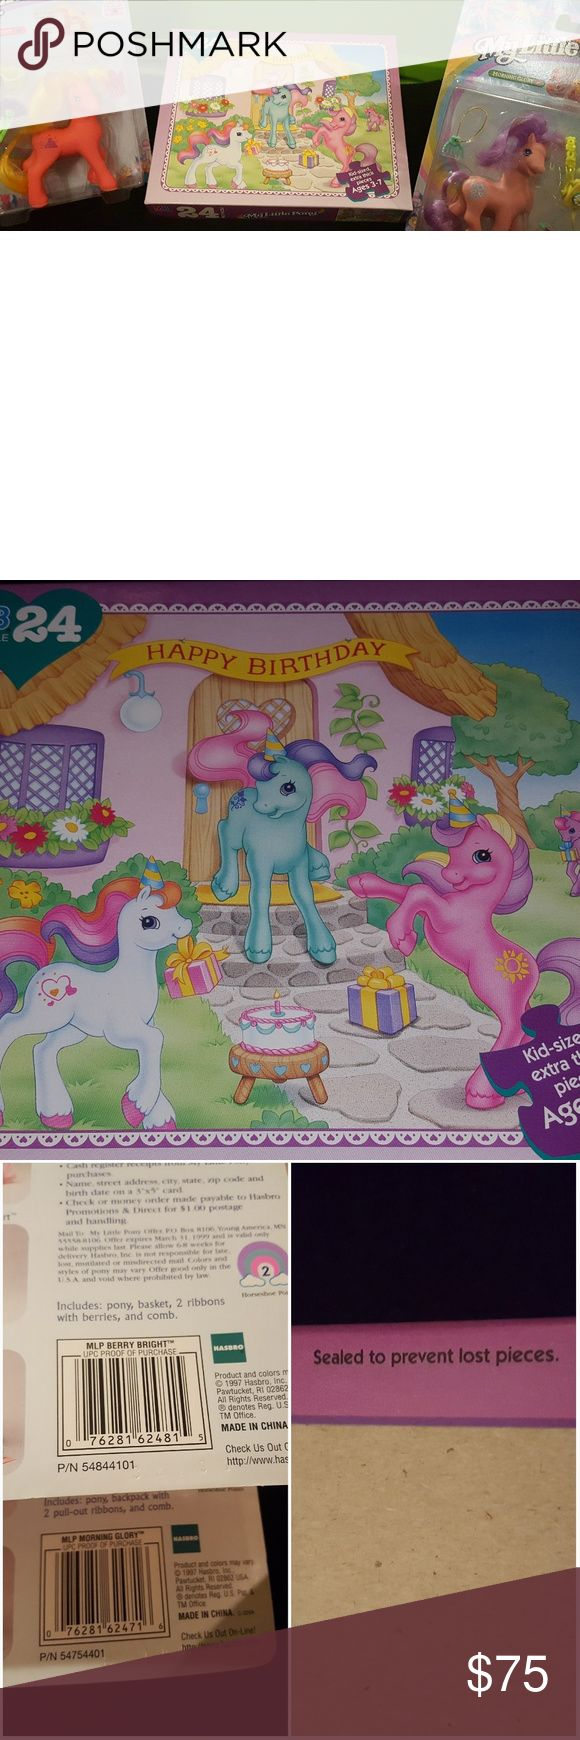 Vintage Gen2 My Little Pony Lot Very cool gen 2 mlp lot. All 3 items new in box/package. Puzzle is still factory sealed.  All items are dated 1997. Smoke and odor/mildew free home. hasbro Other